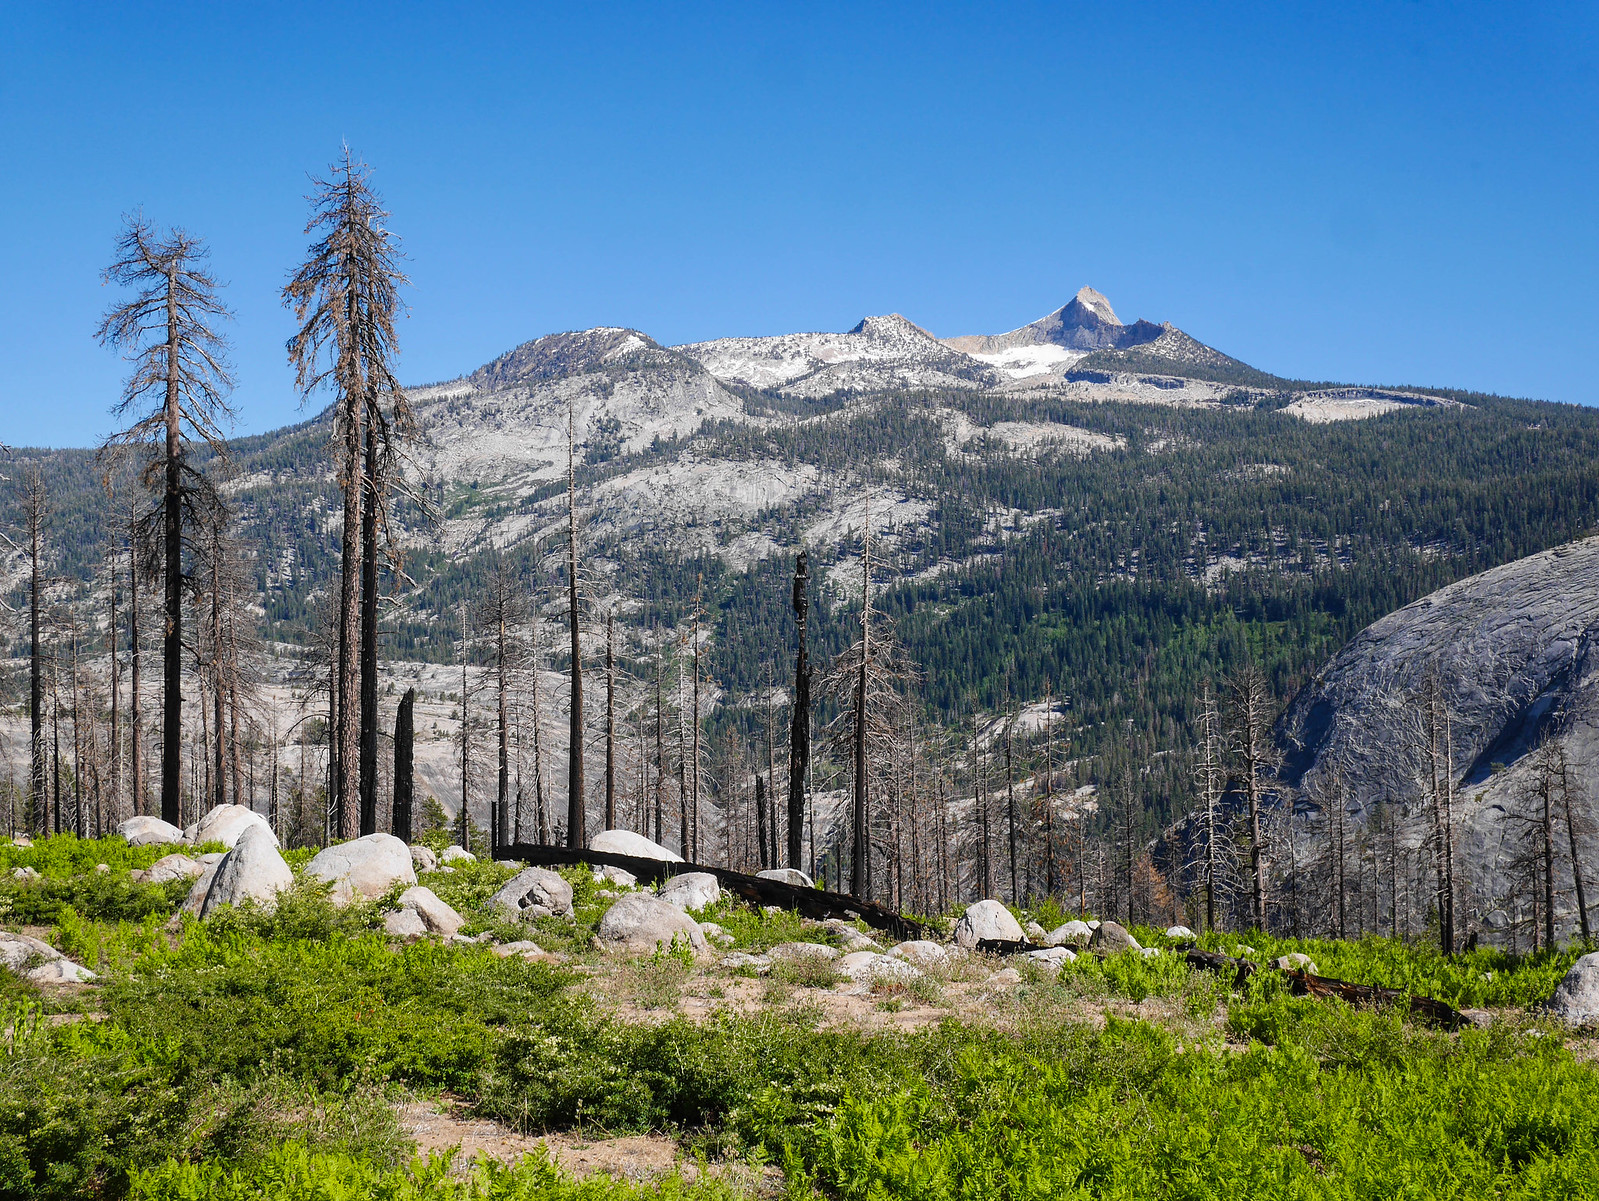 Mount Clark from the burn area above Merced Canyon